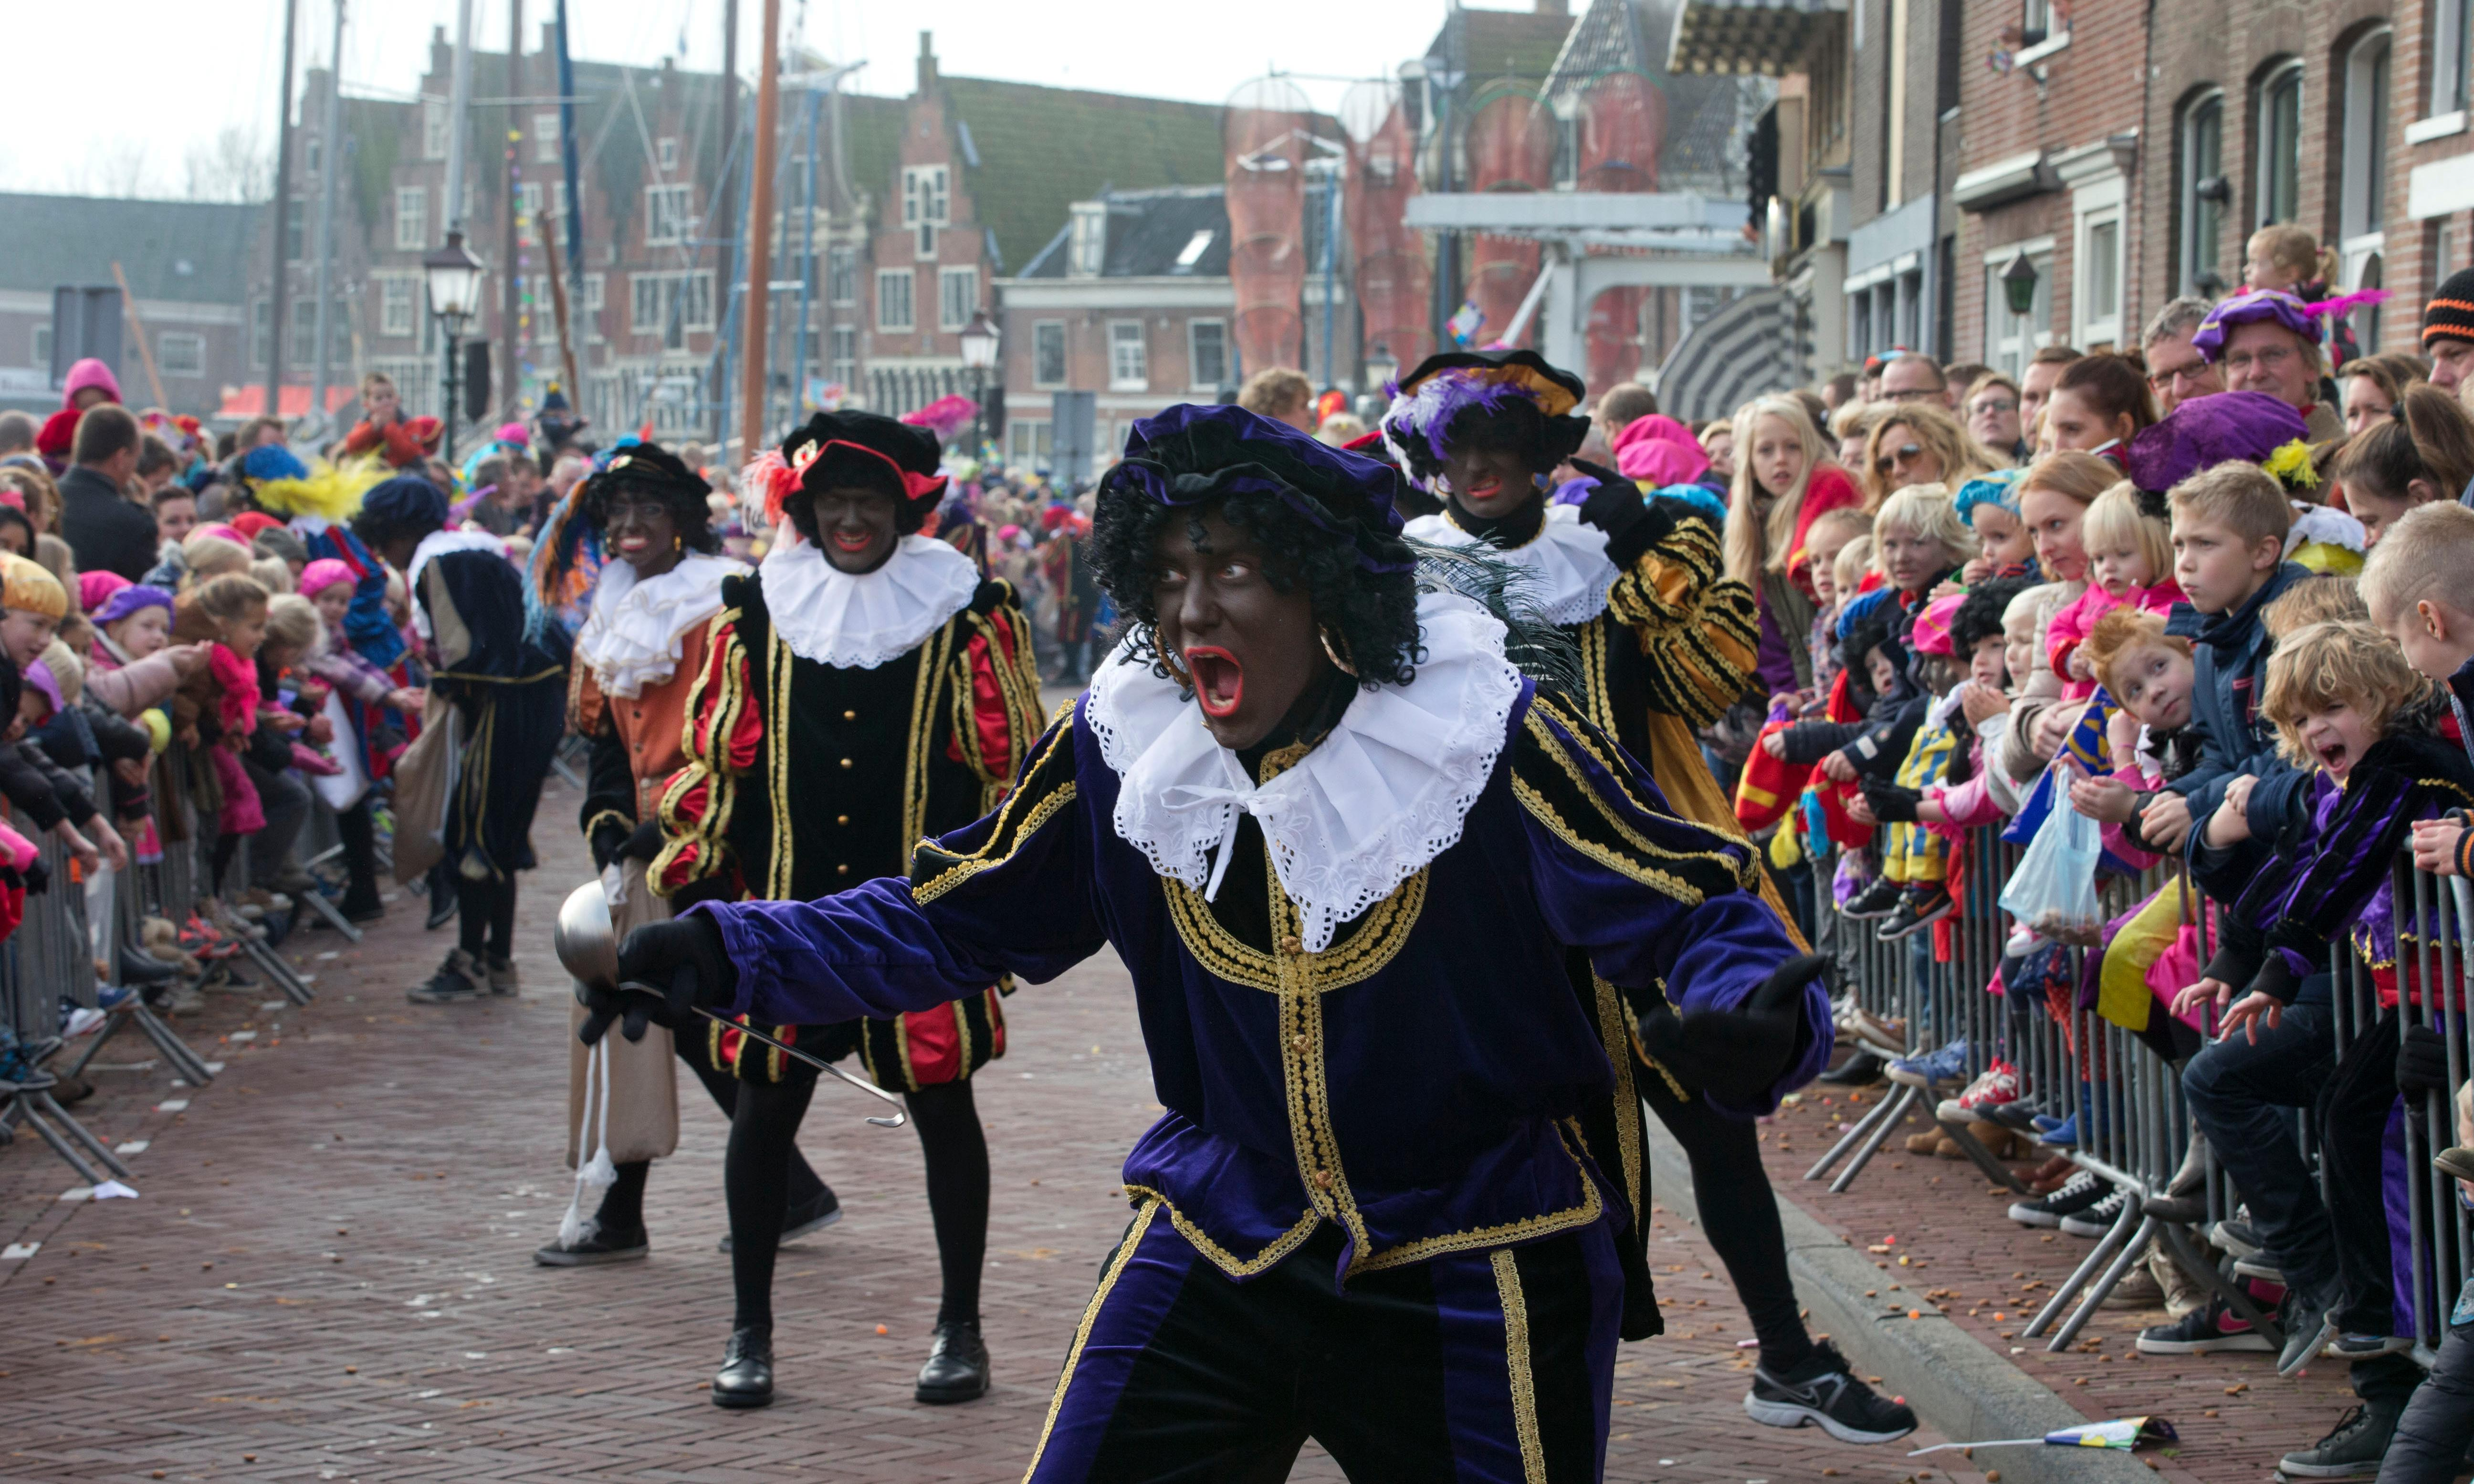 'Black Pete': the scandal we Dutch can't stay silent about any more